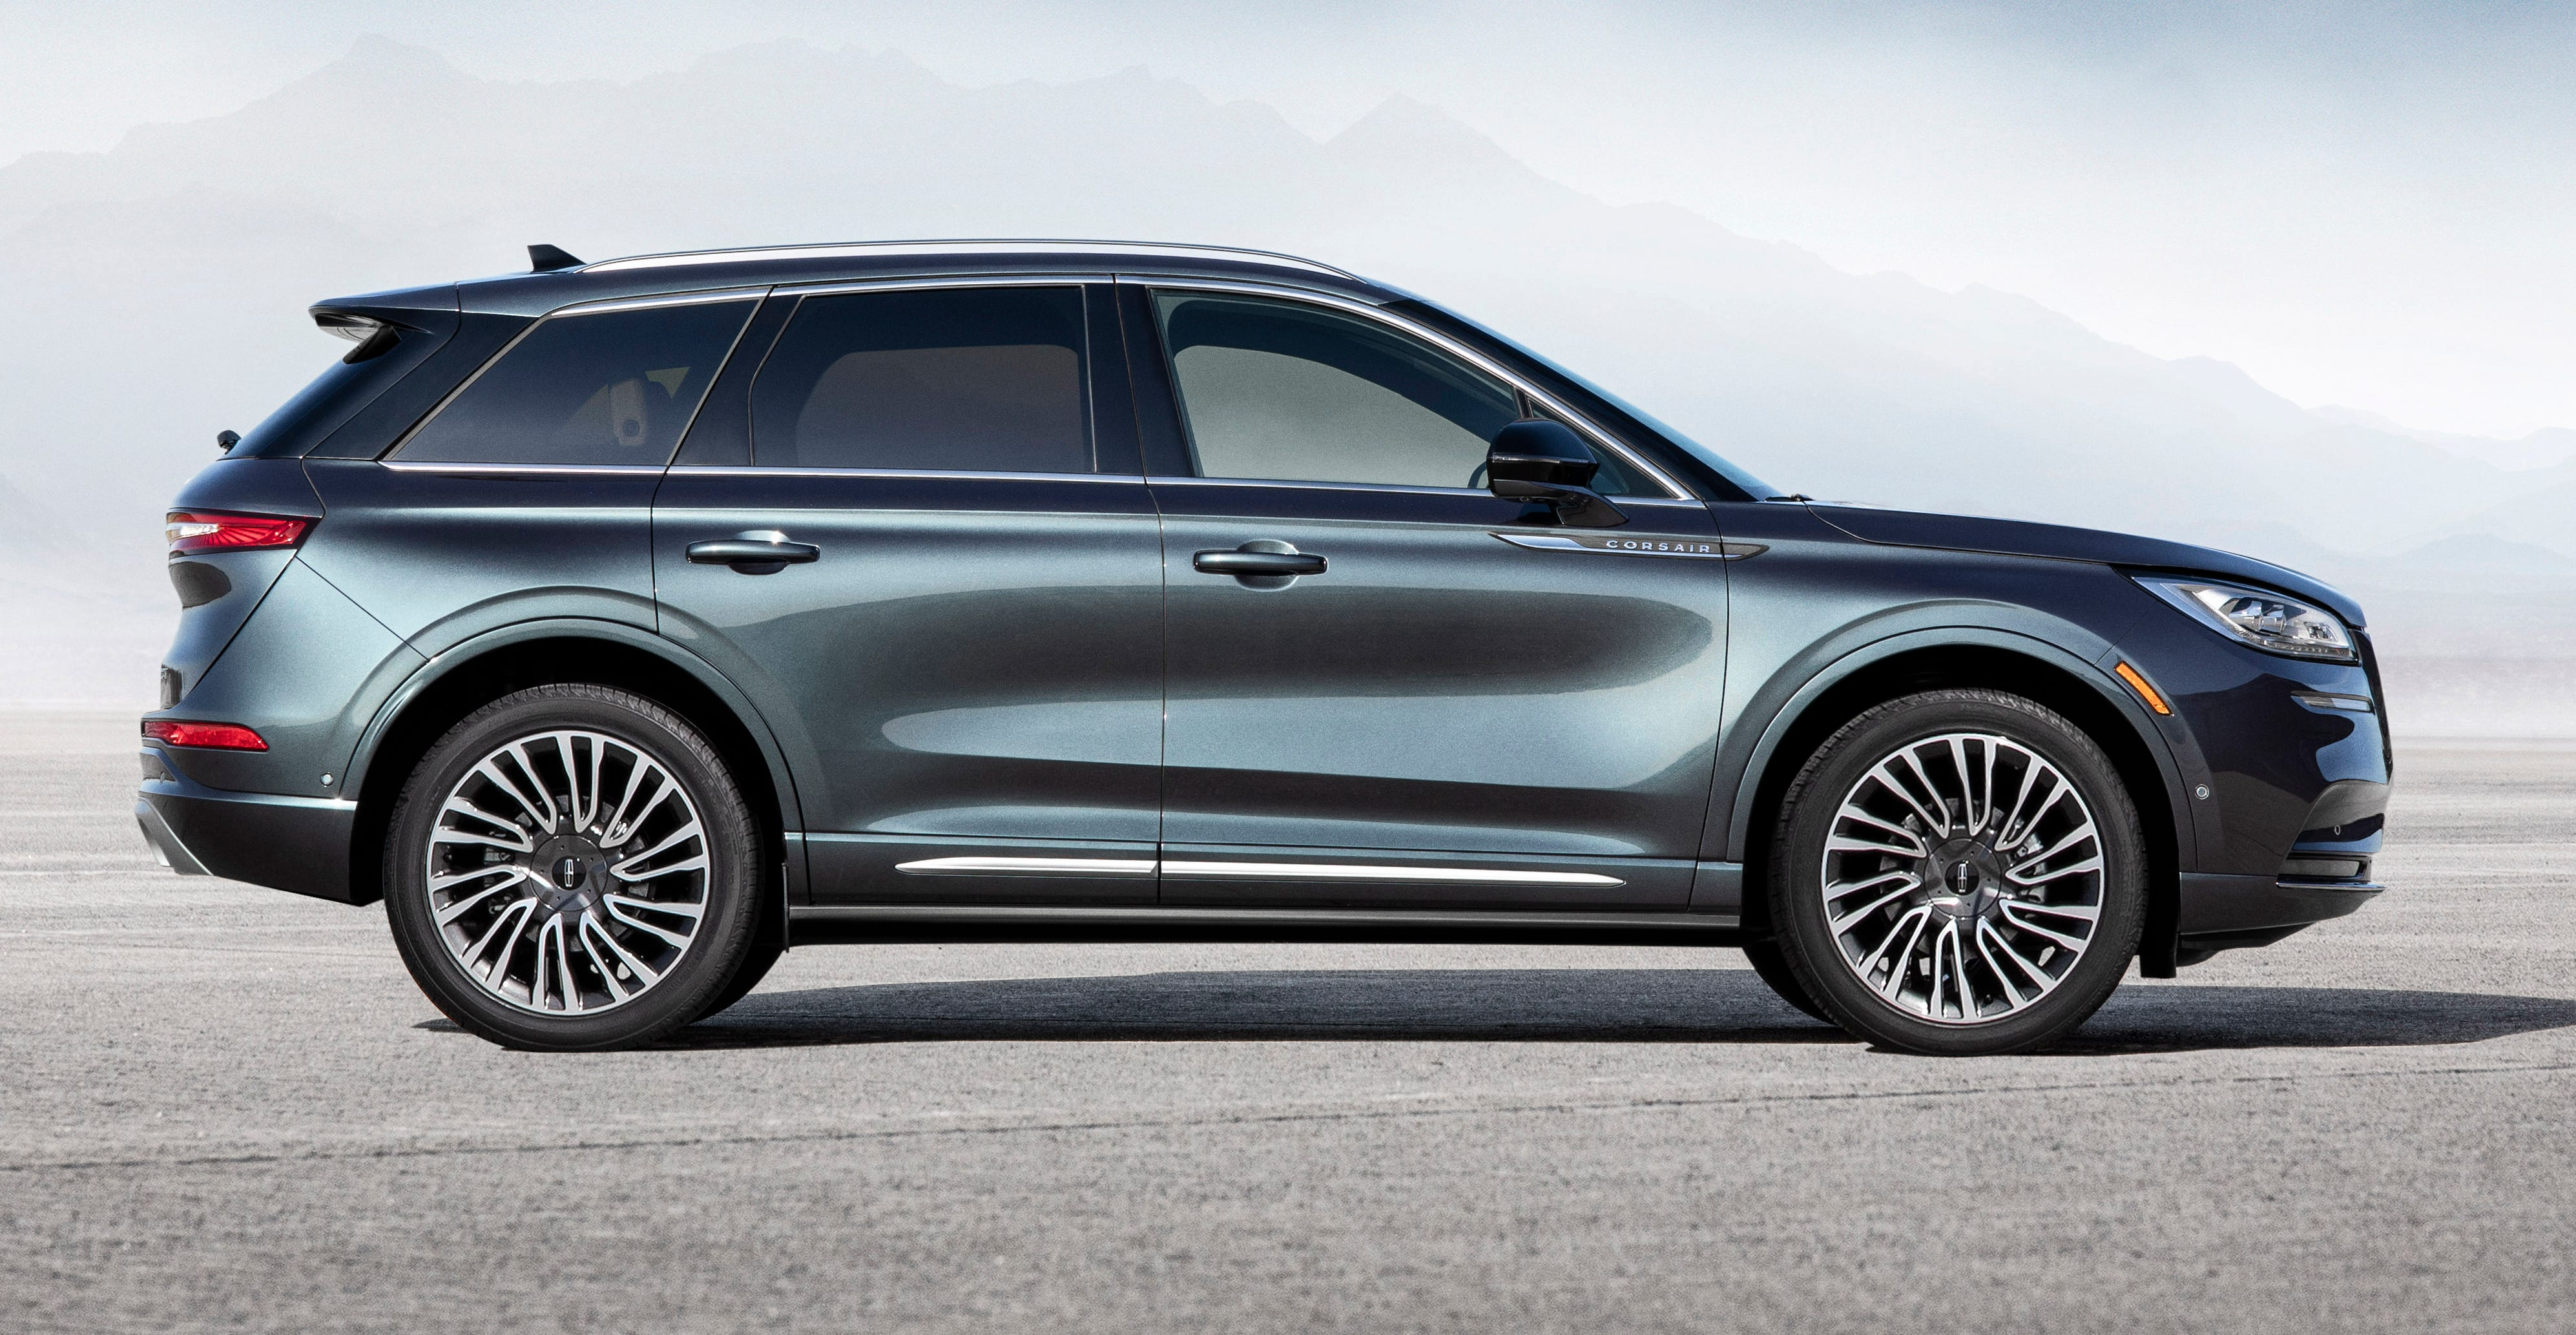 Lincoln Motor Co. will introduce here Wednesday an all-new compact SUV geared toward bringing new customers into the brand.